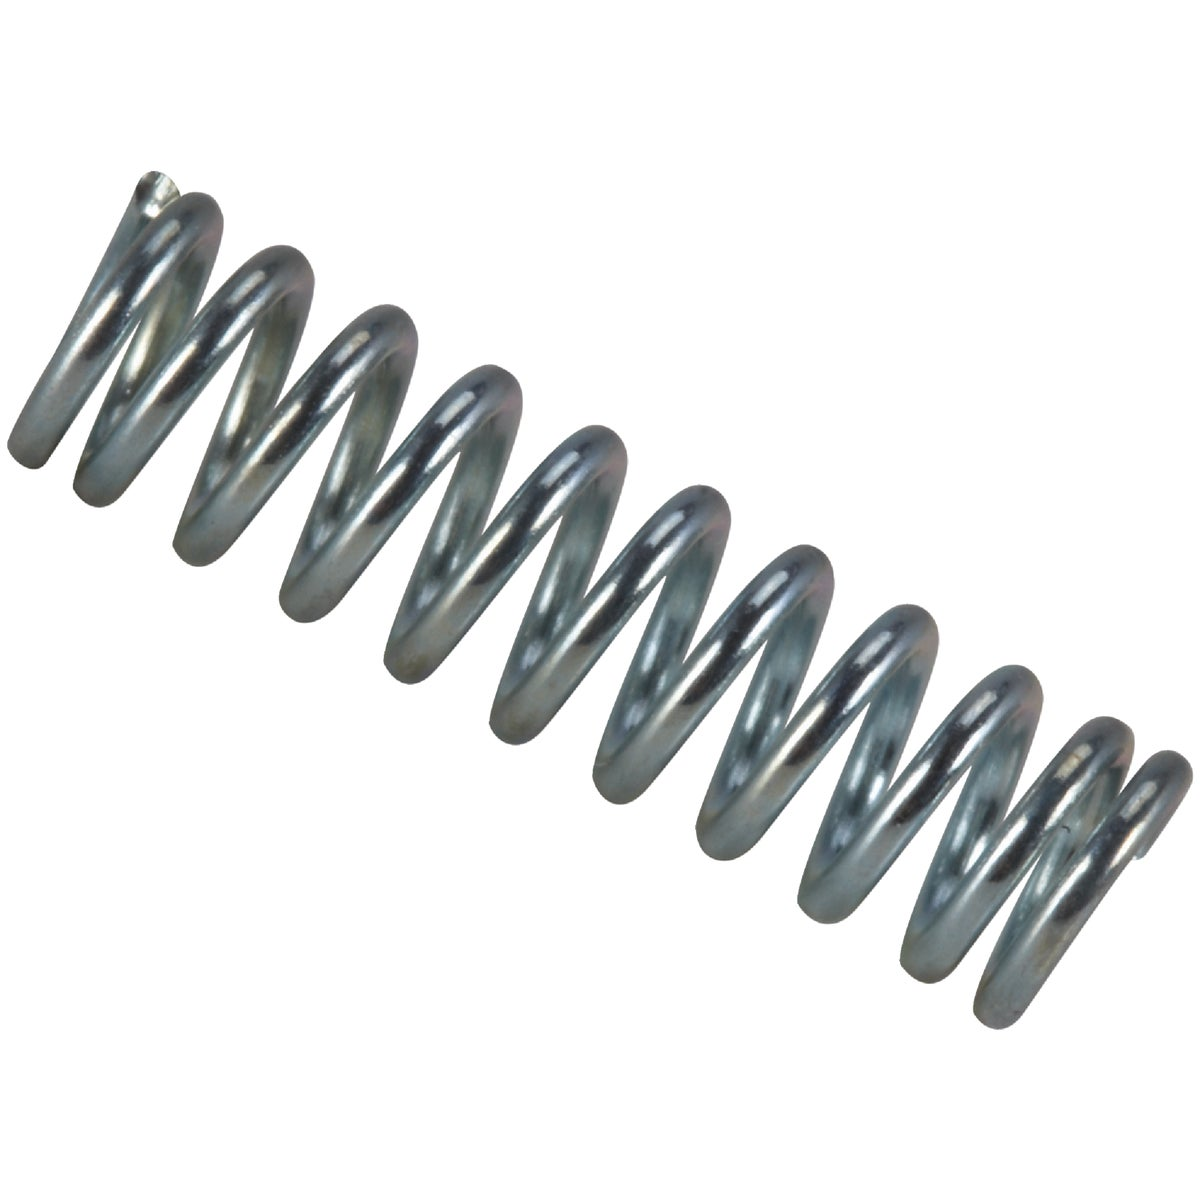 COMPRESSION SPRING - C-614 by Century Spring Corp